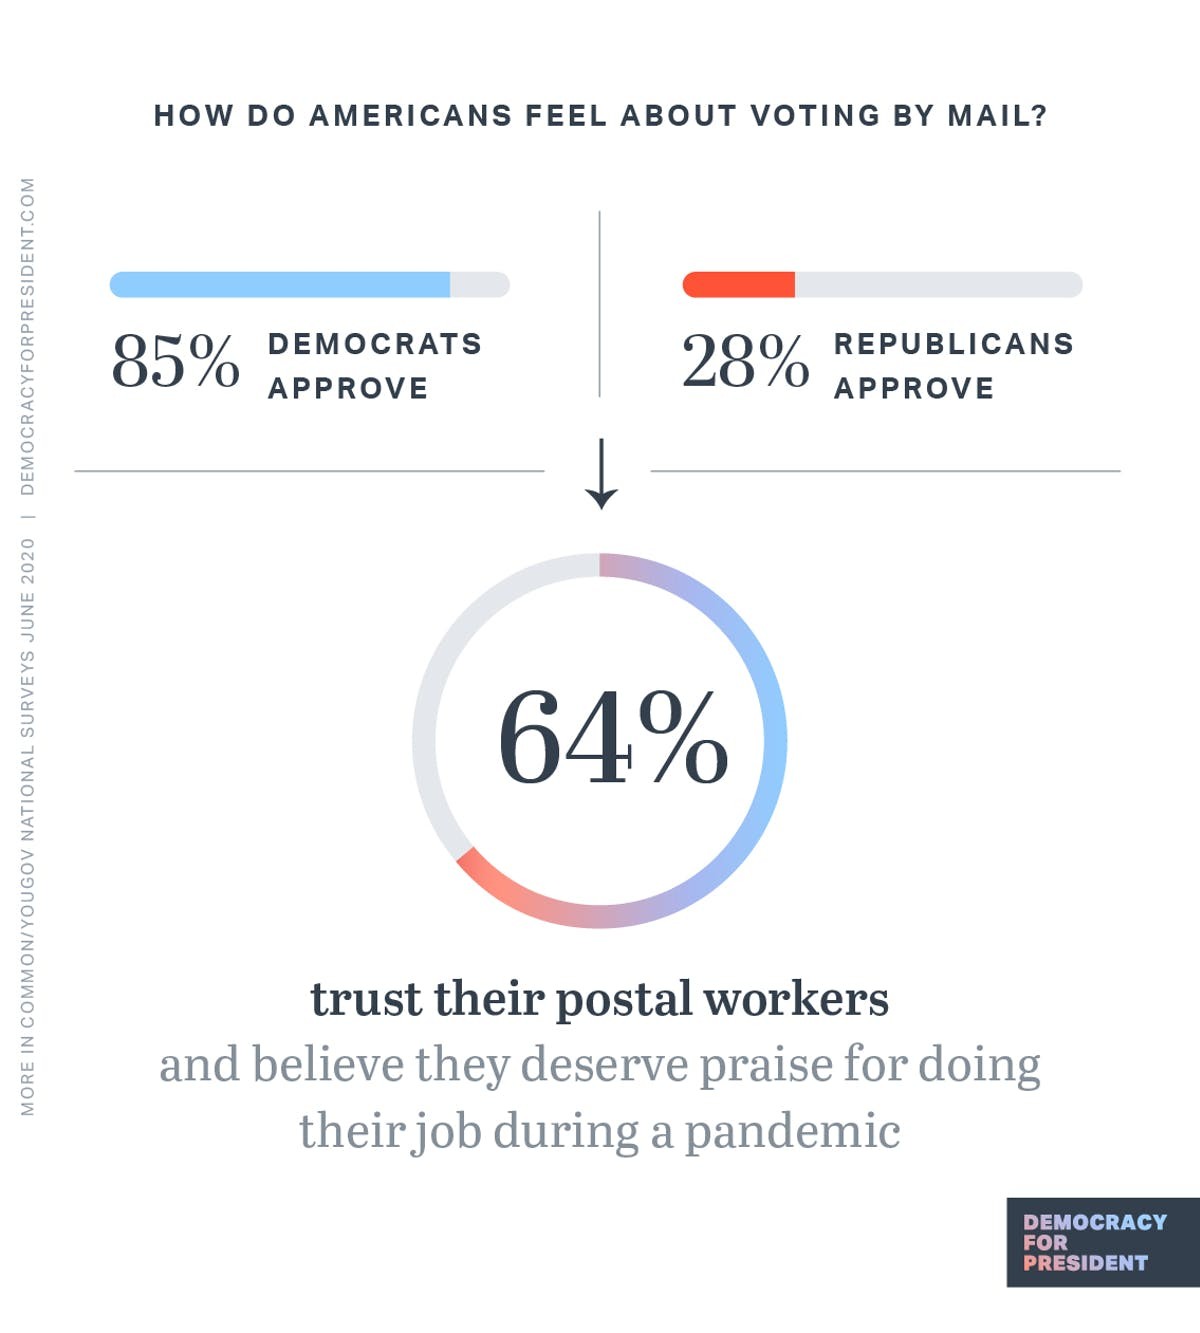 How do Americans feel about voting by mail? 85% of Democrats approve. 28% of Republicans approve. 64% of Americans trust their postal workers and believe they deserve praise for doing their job during a pandemic.